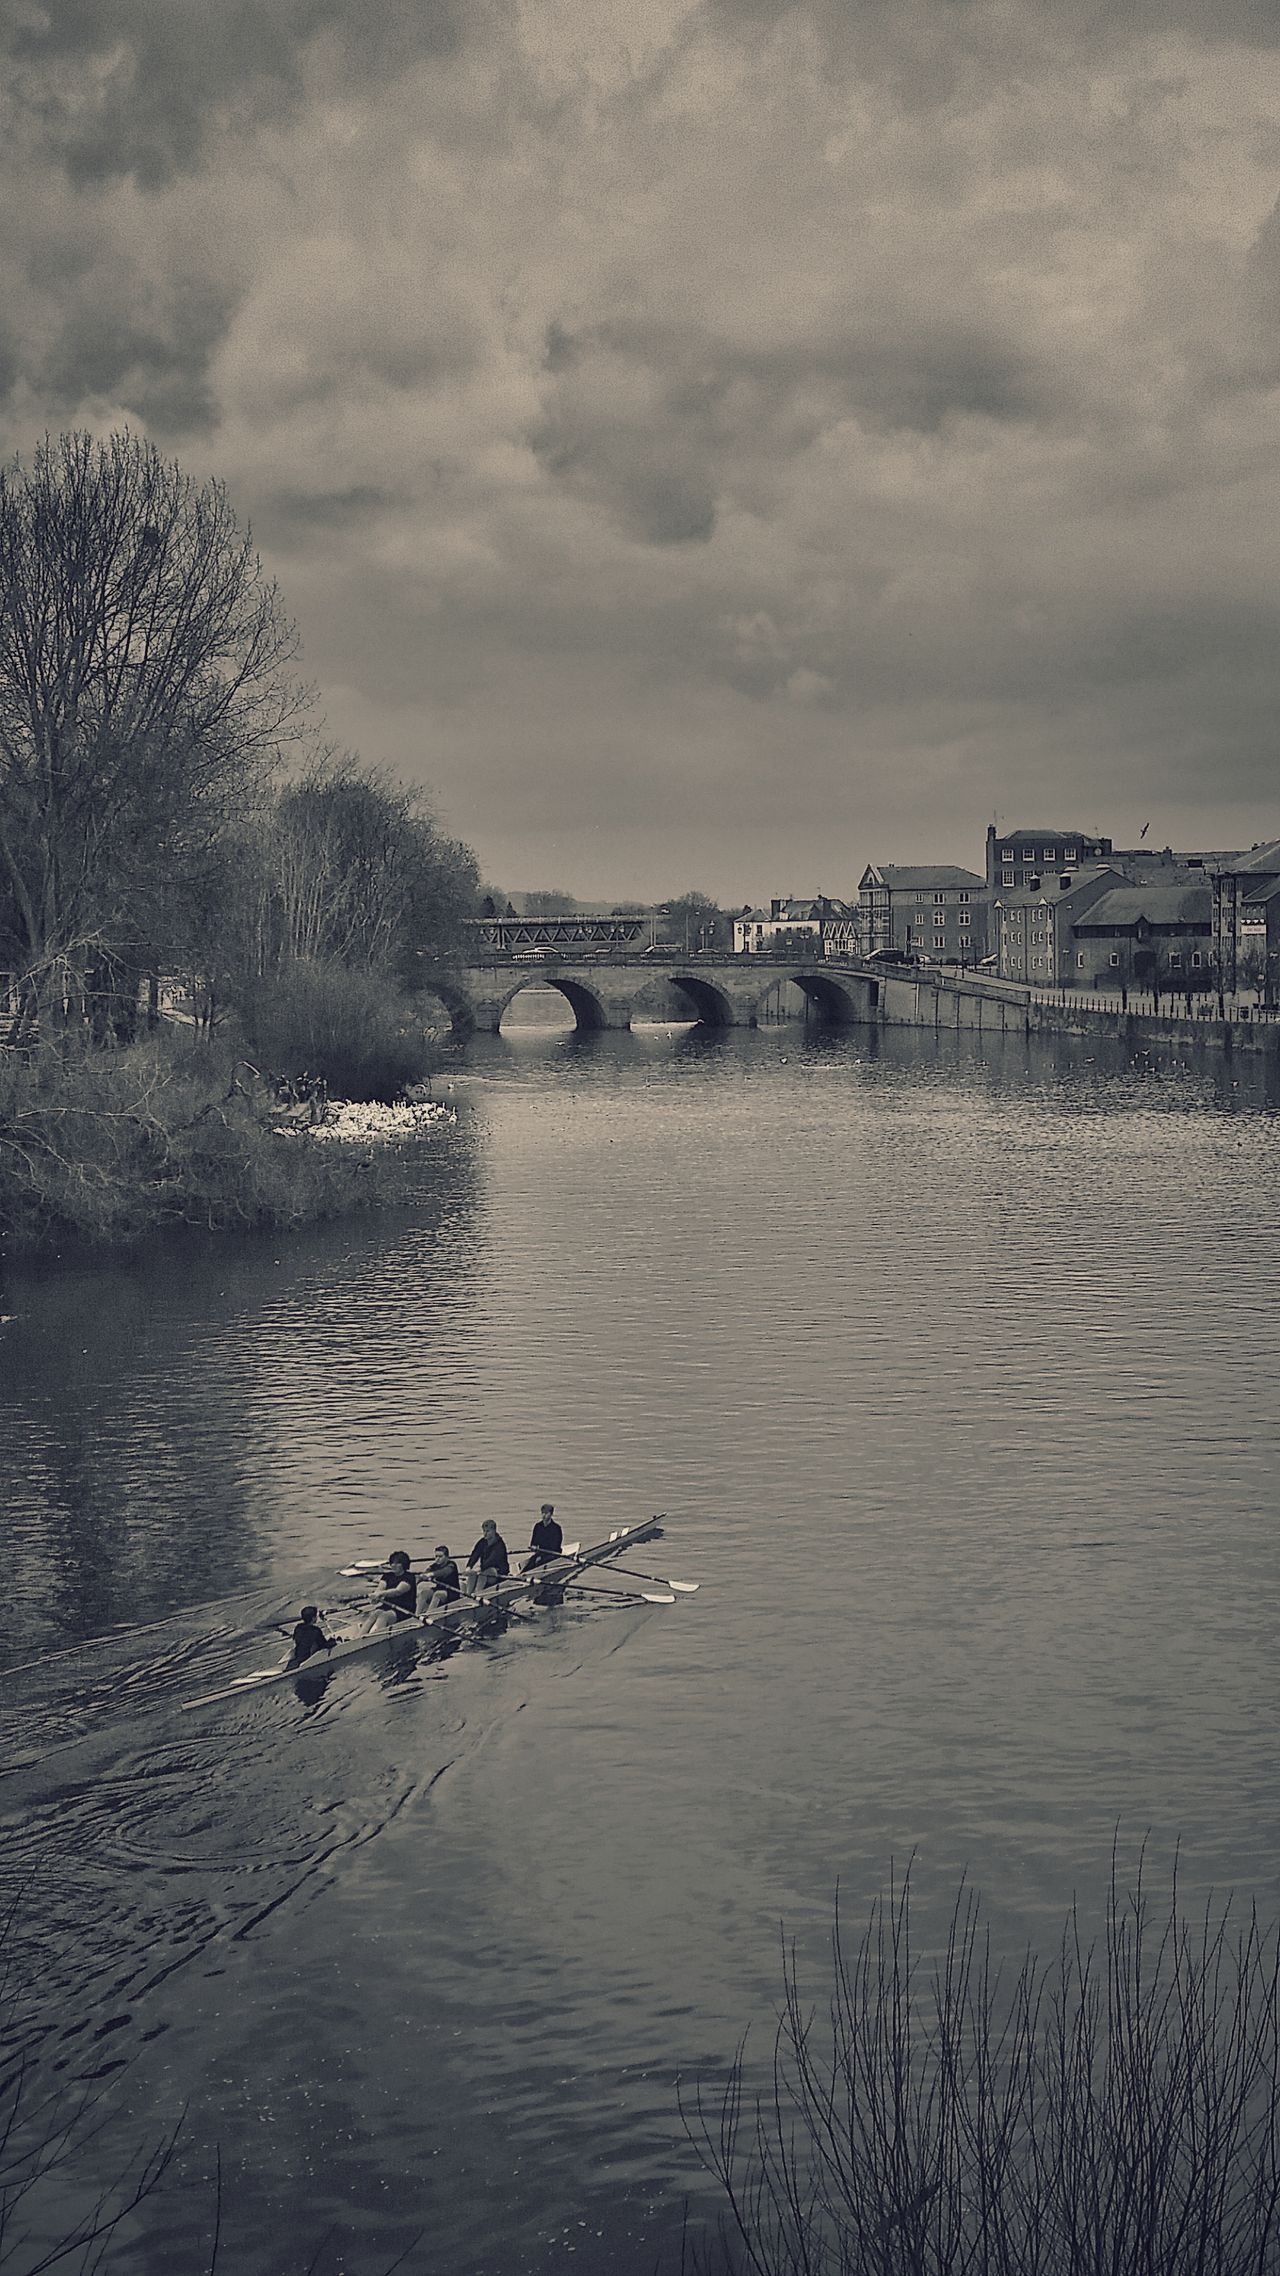 Trainee Rowers on the River Severn Worcester. The patch of white on the left is a large group of Swans. They're always there in the daytime because so many locals feed them daily. I've counted over 250 before now! Flock Of Birds Vintage Edit  Winter Exceptional Photographs Eyeemphotography Beauty In Ordinary Things EyeEm Masterclass Vintage Editing Worcester Rowing Club England 🌹 River View Rowing